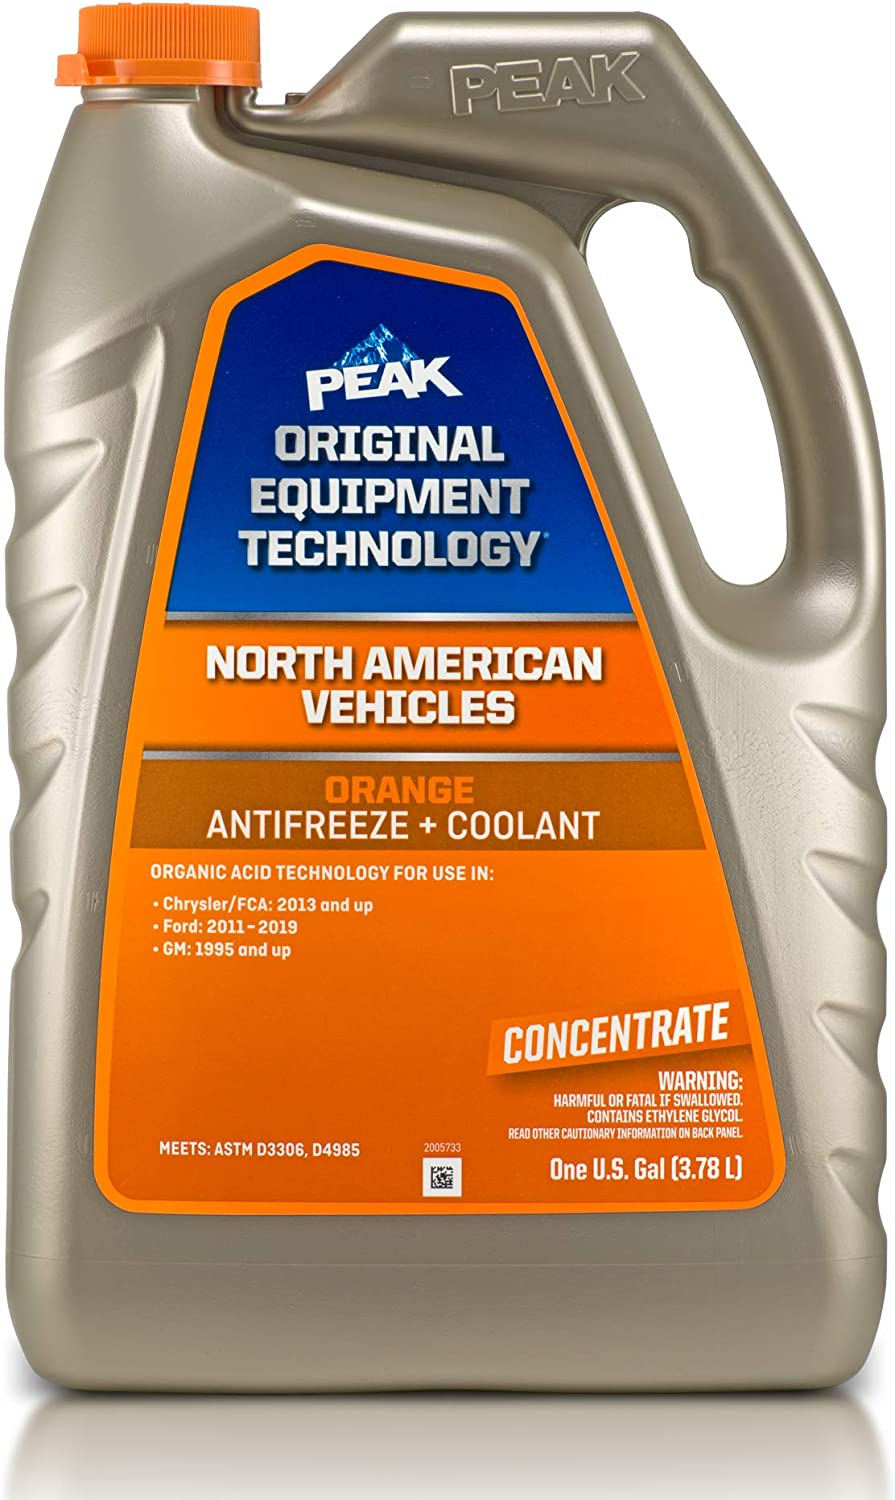 PEAK OET Extended Life Orange OFFicial store Antifreeze Concentrate unisex Coolant for